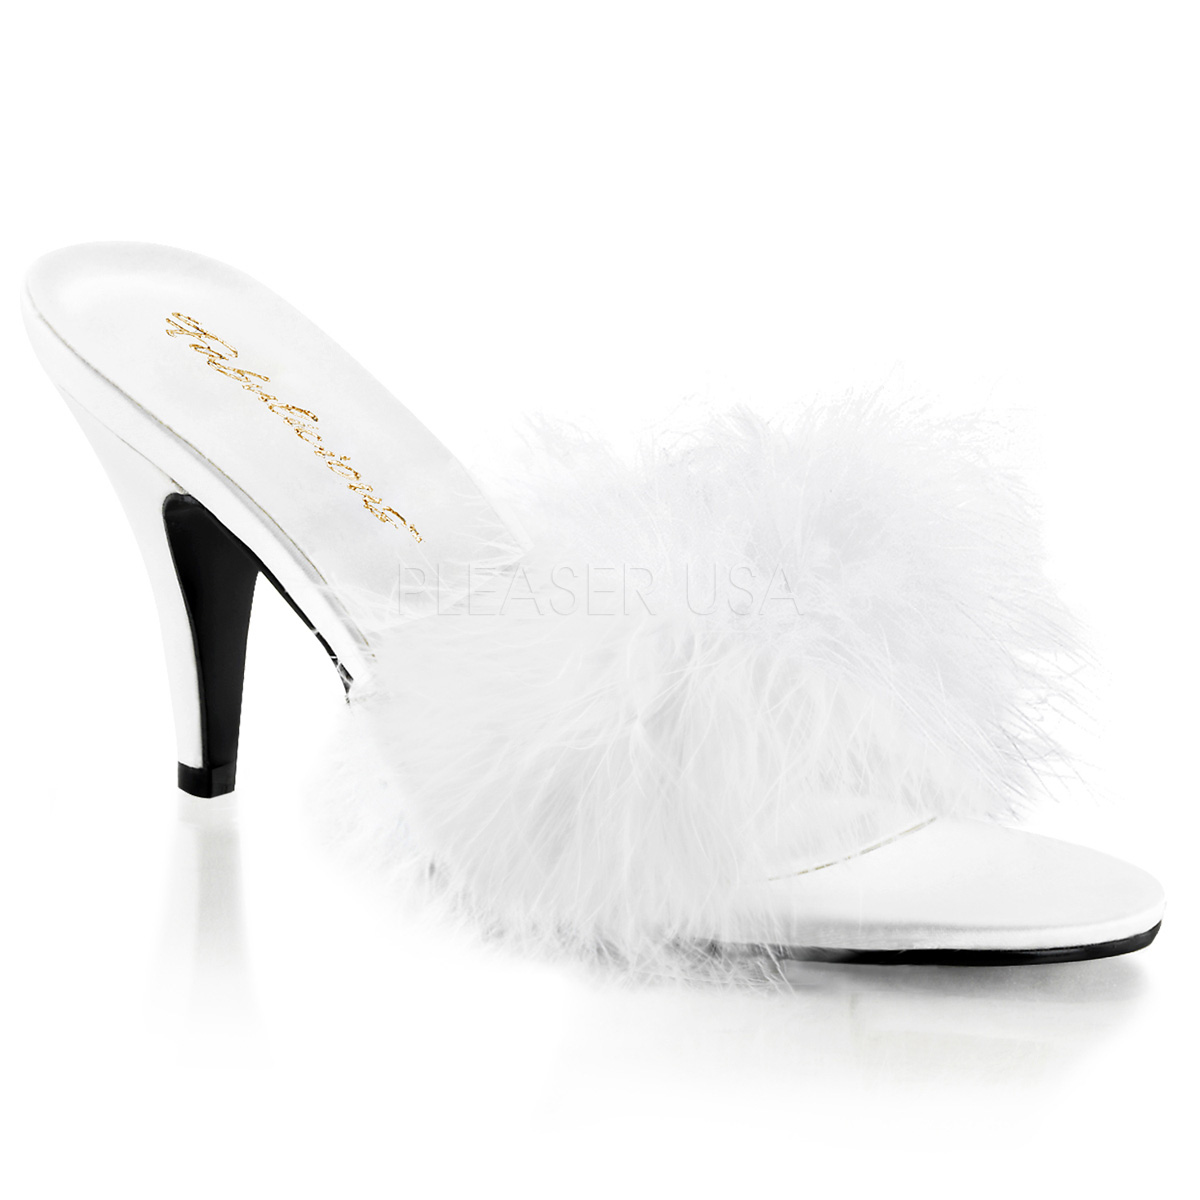 3 Inch Heel Marabou Slippers - Click Image to Close